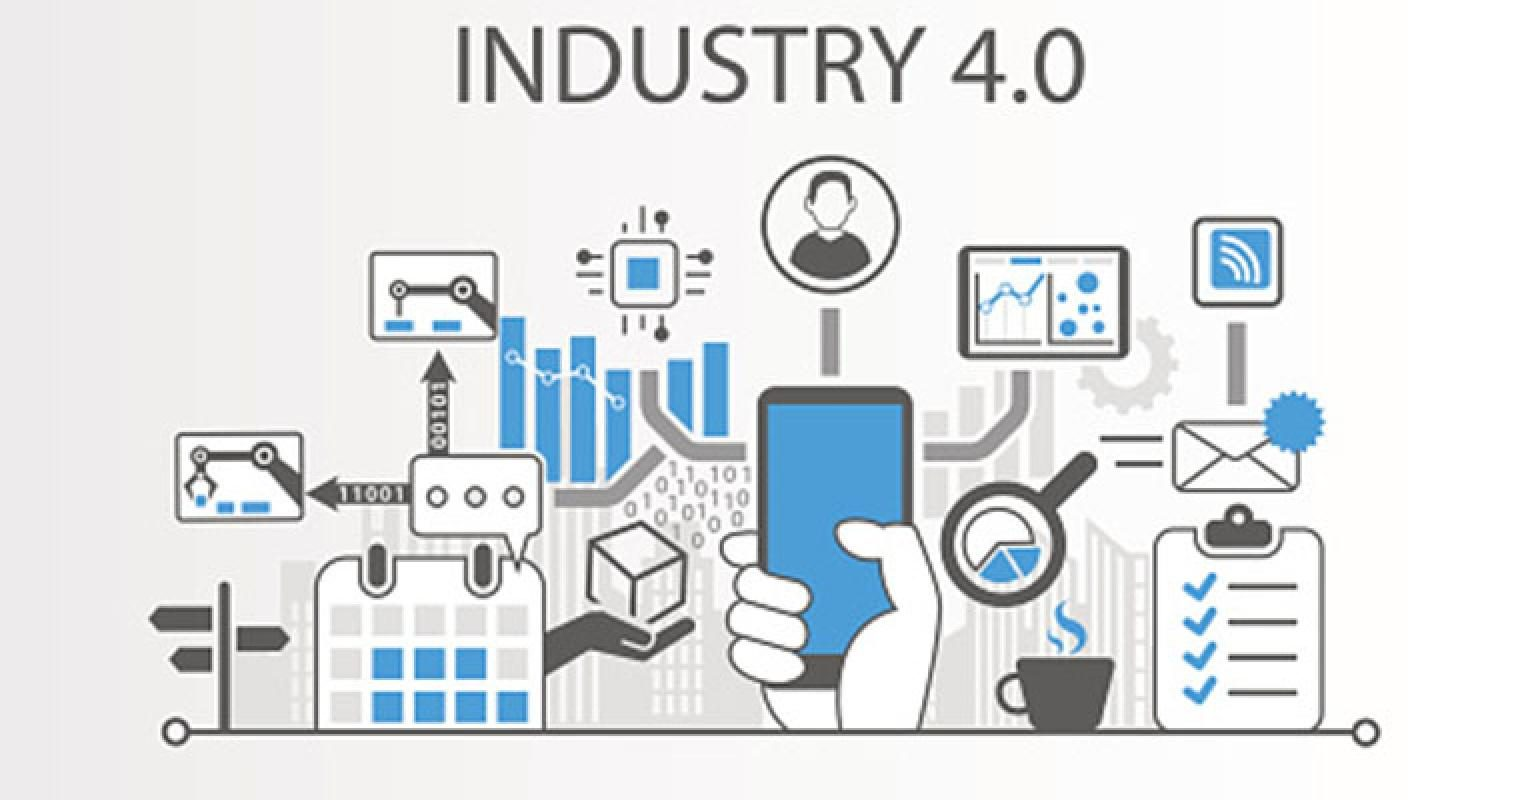 Singapore aims to lead the way in Industry 4.0 efforts in Asean